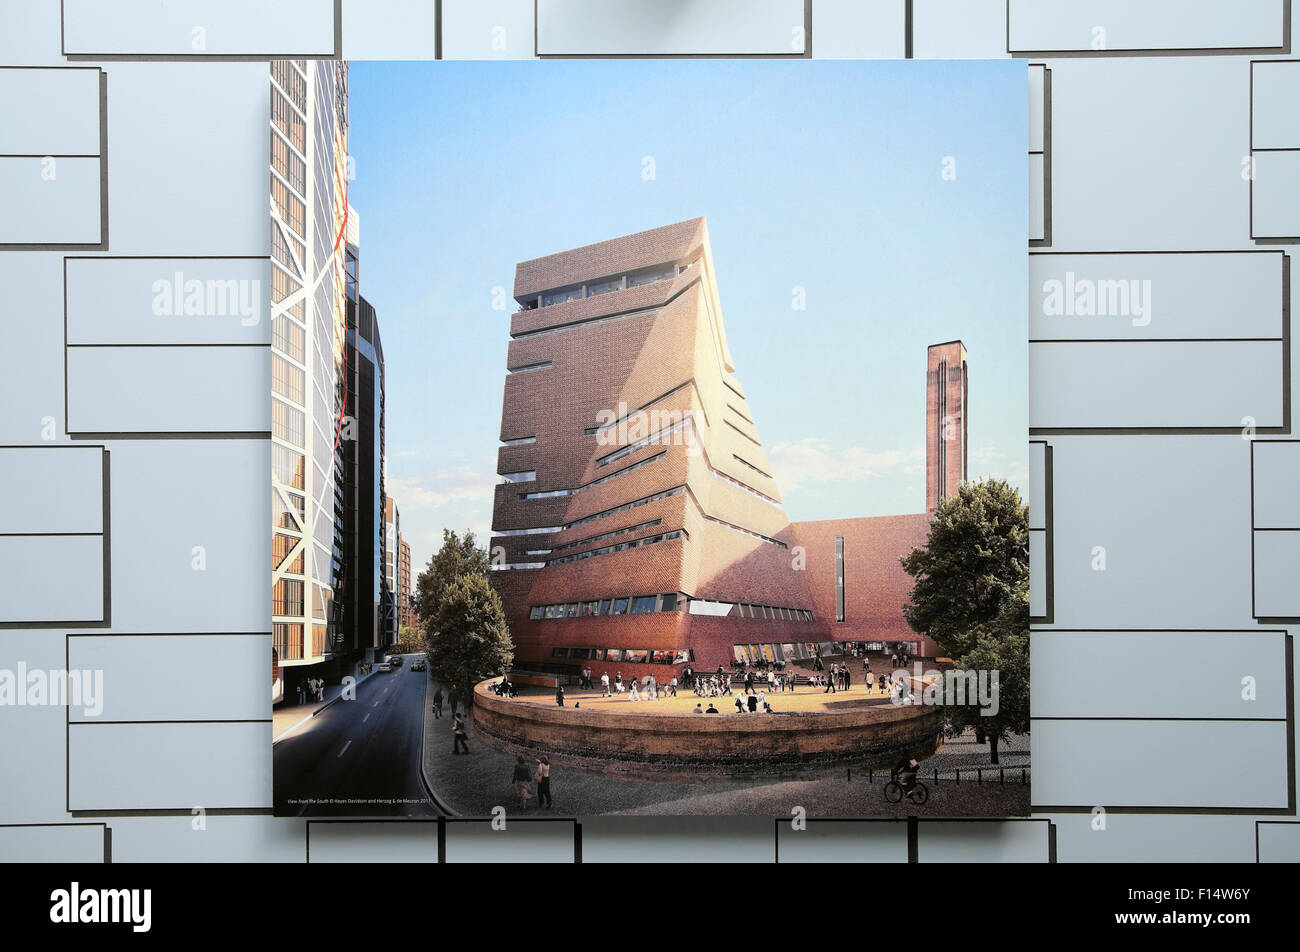 Illustration of the new addition to the Tate Modern Art Gallery on a building construction site hoarding in  Bankside - Stock Image